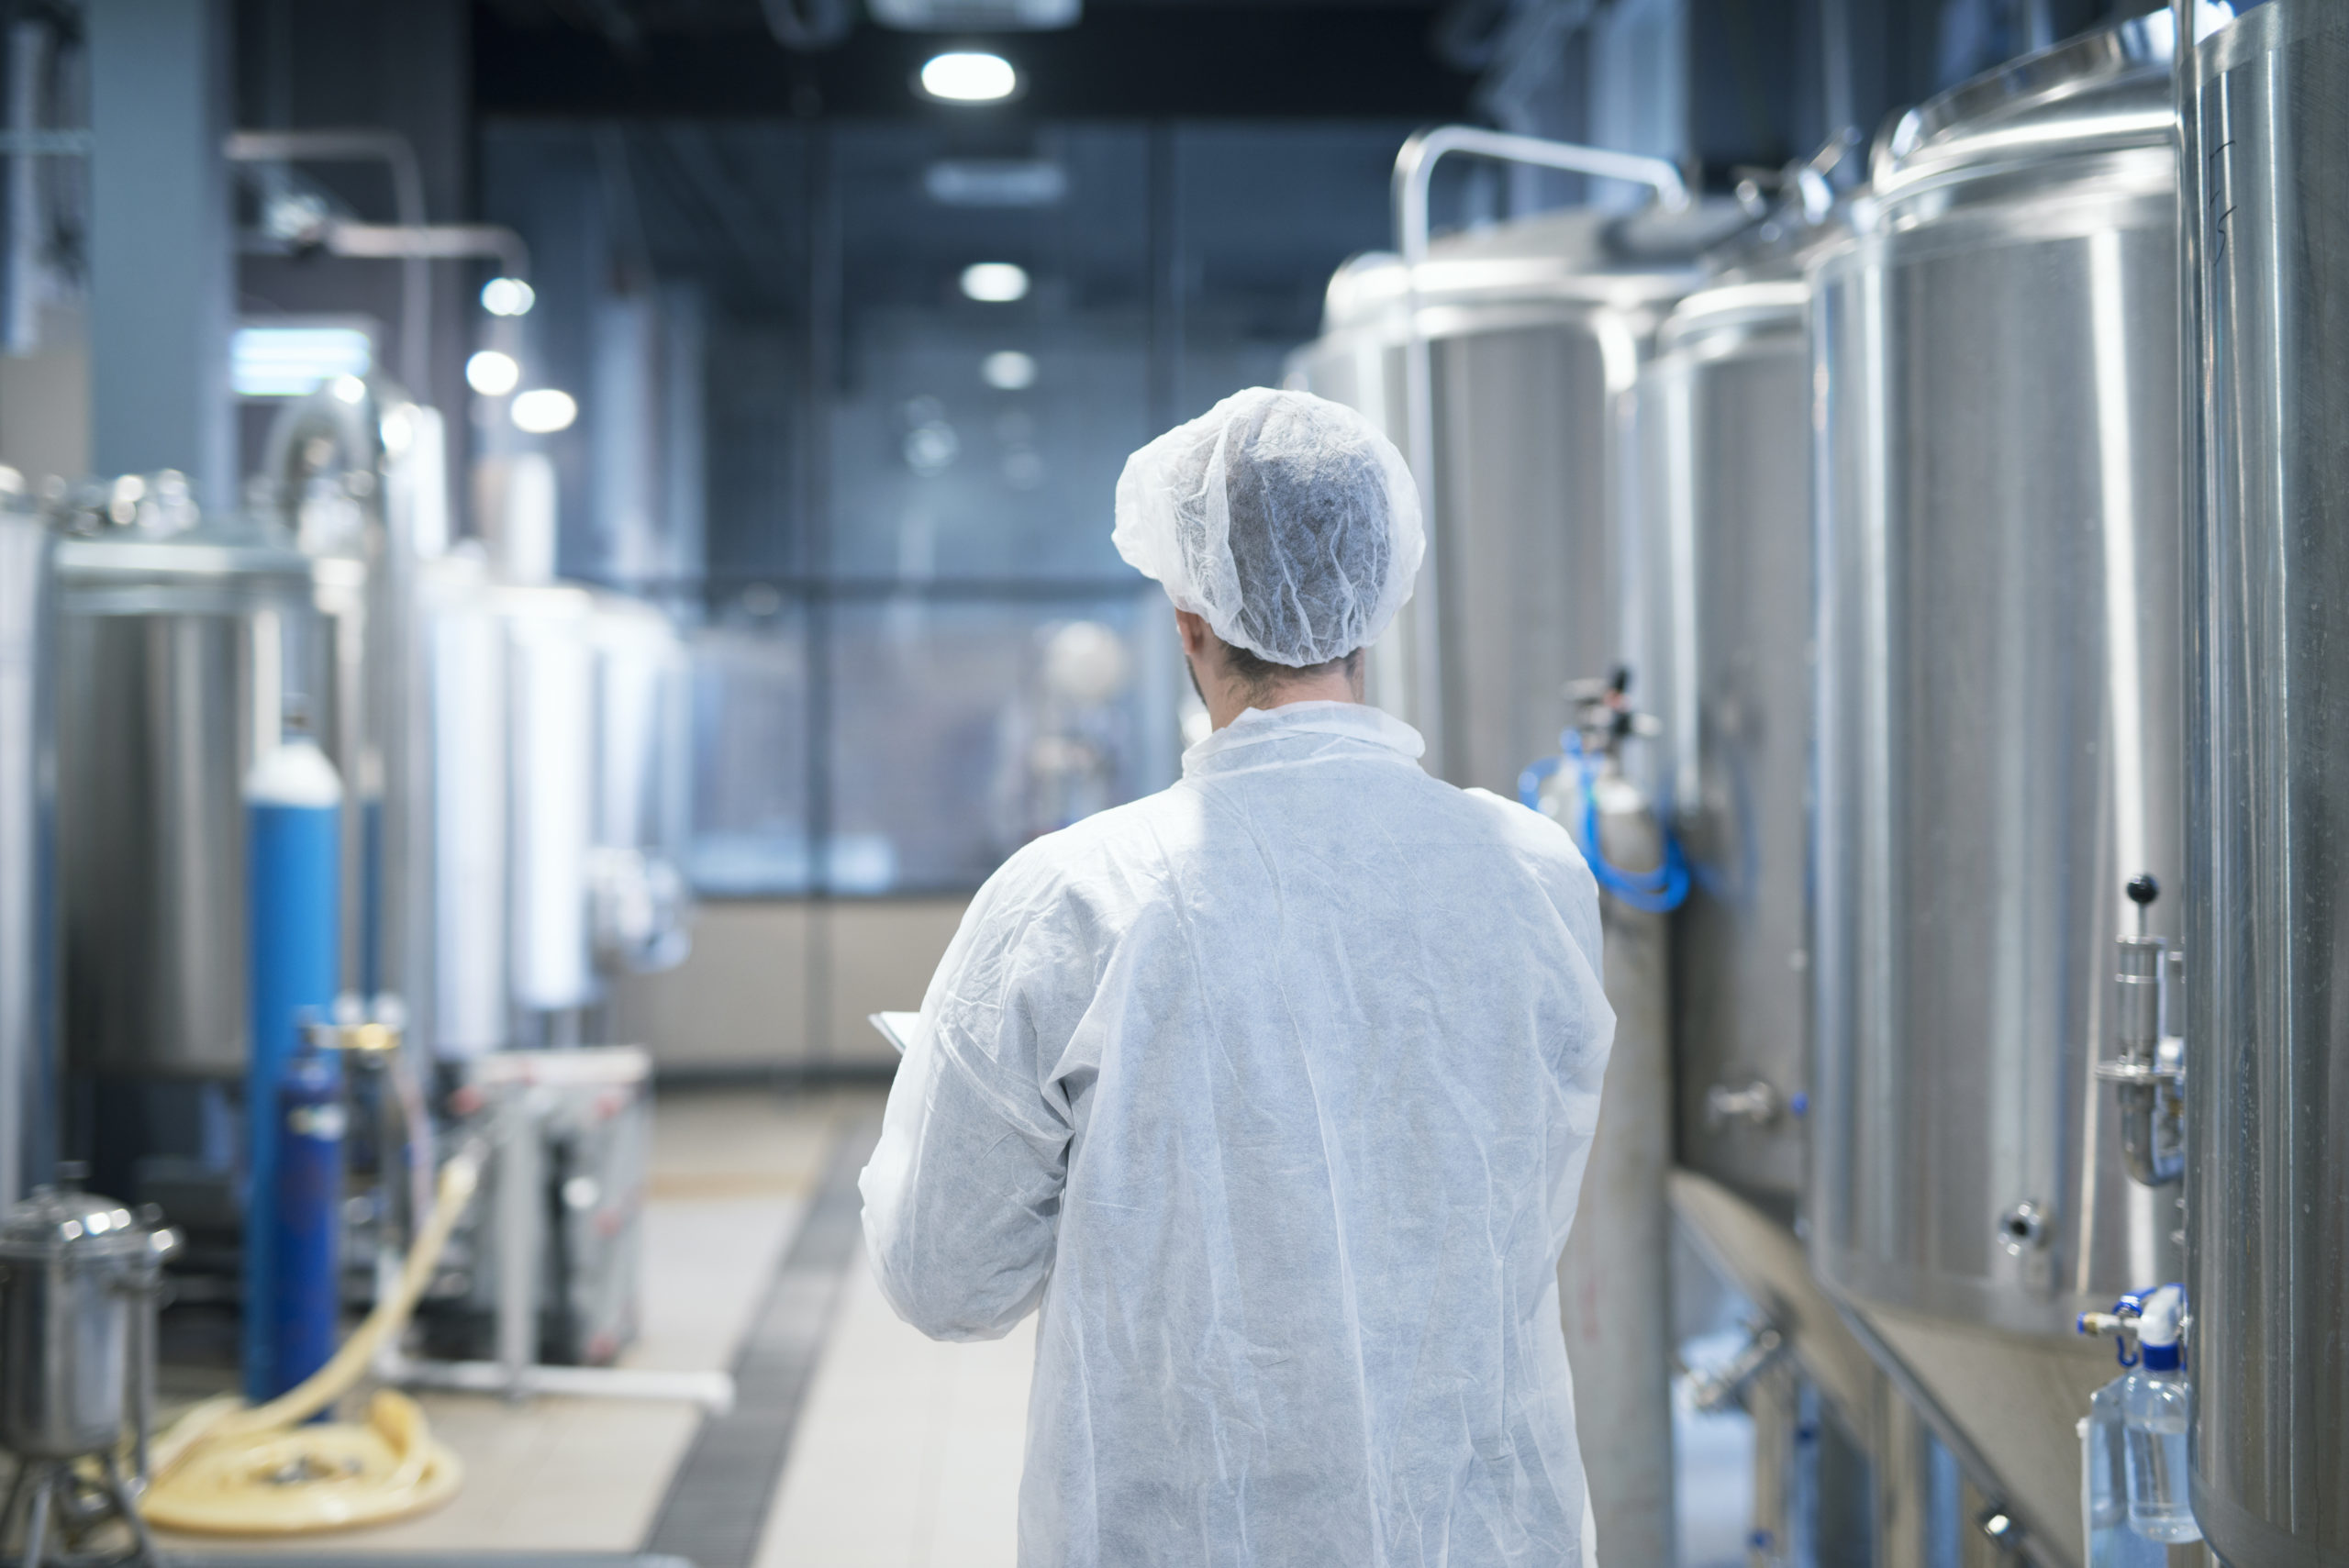 Technologist in white protective suit walking through food factory production line checking quality.